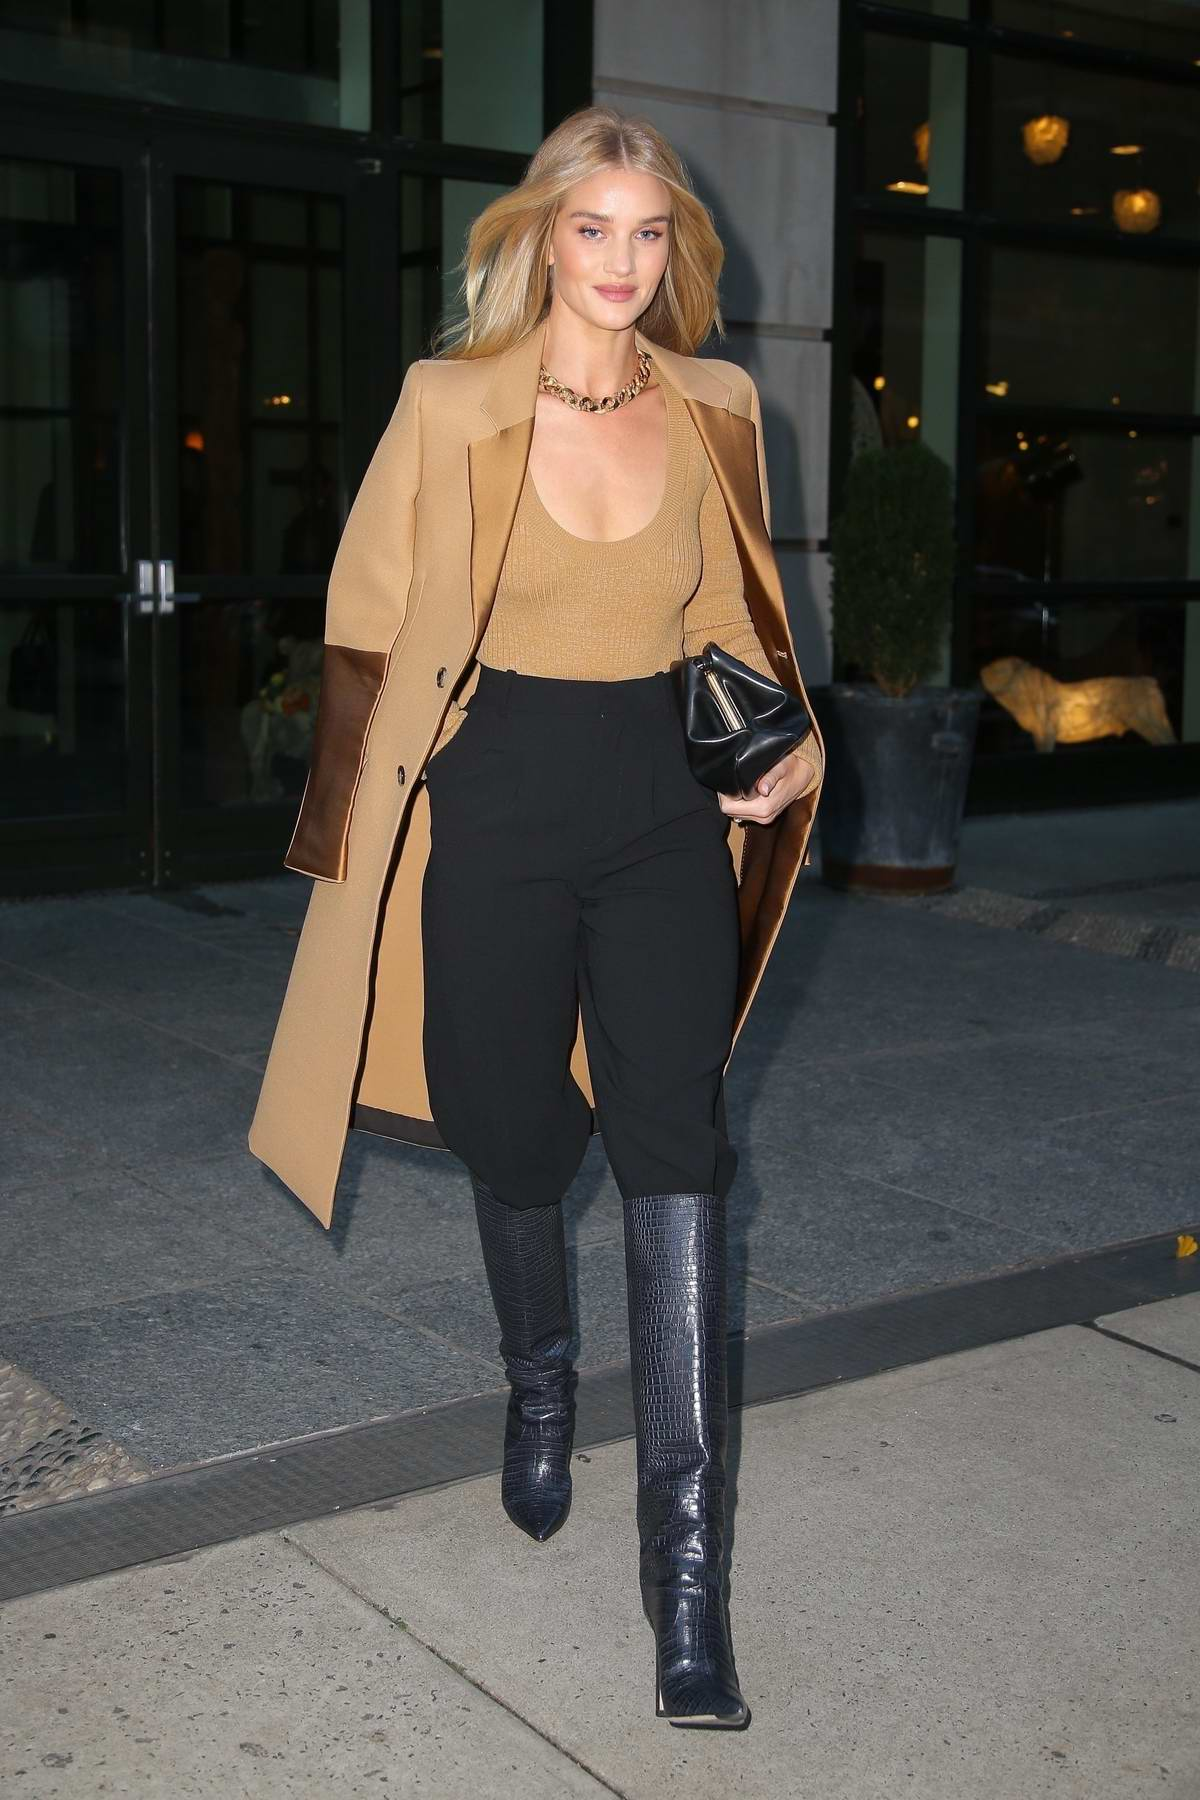 Rosie Huntinghton-Whiteley looks chic in a beige coat with matching top and black trousers as she heads out in New York City